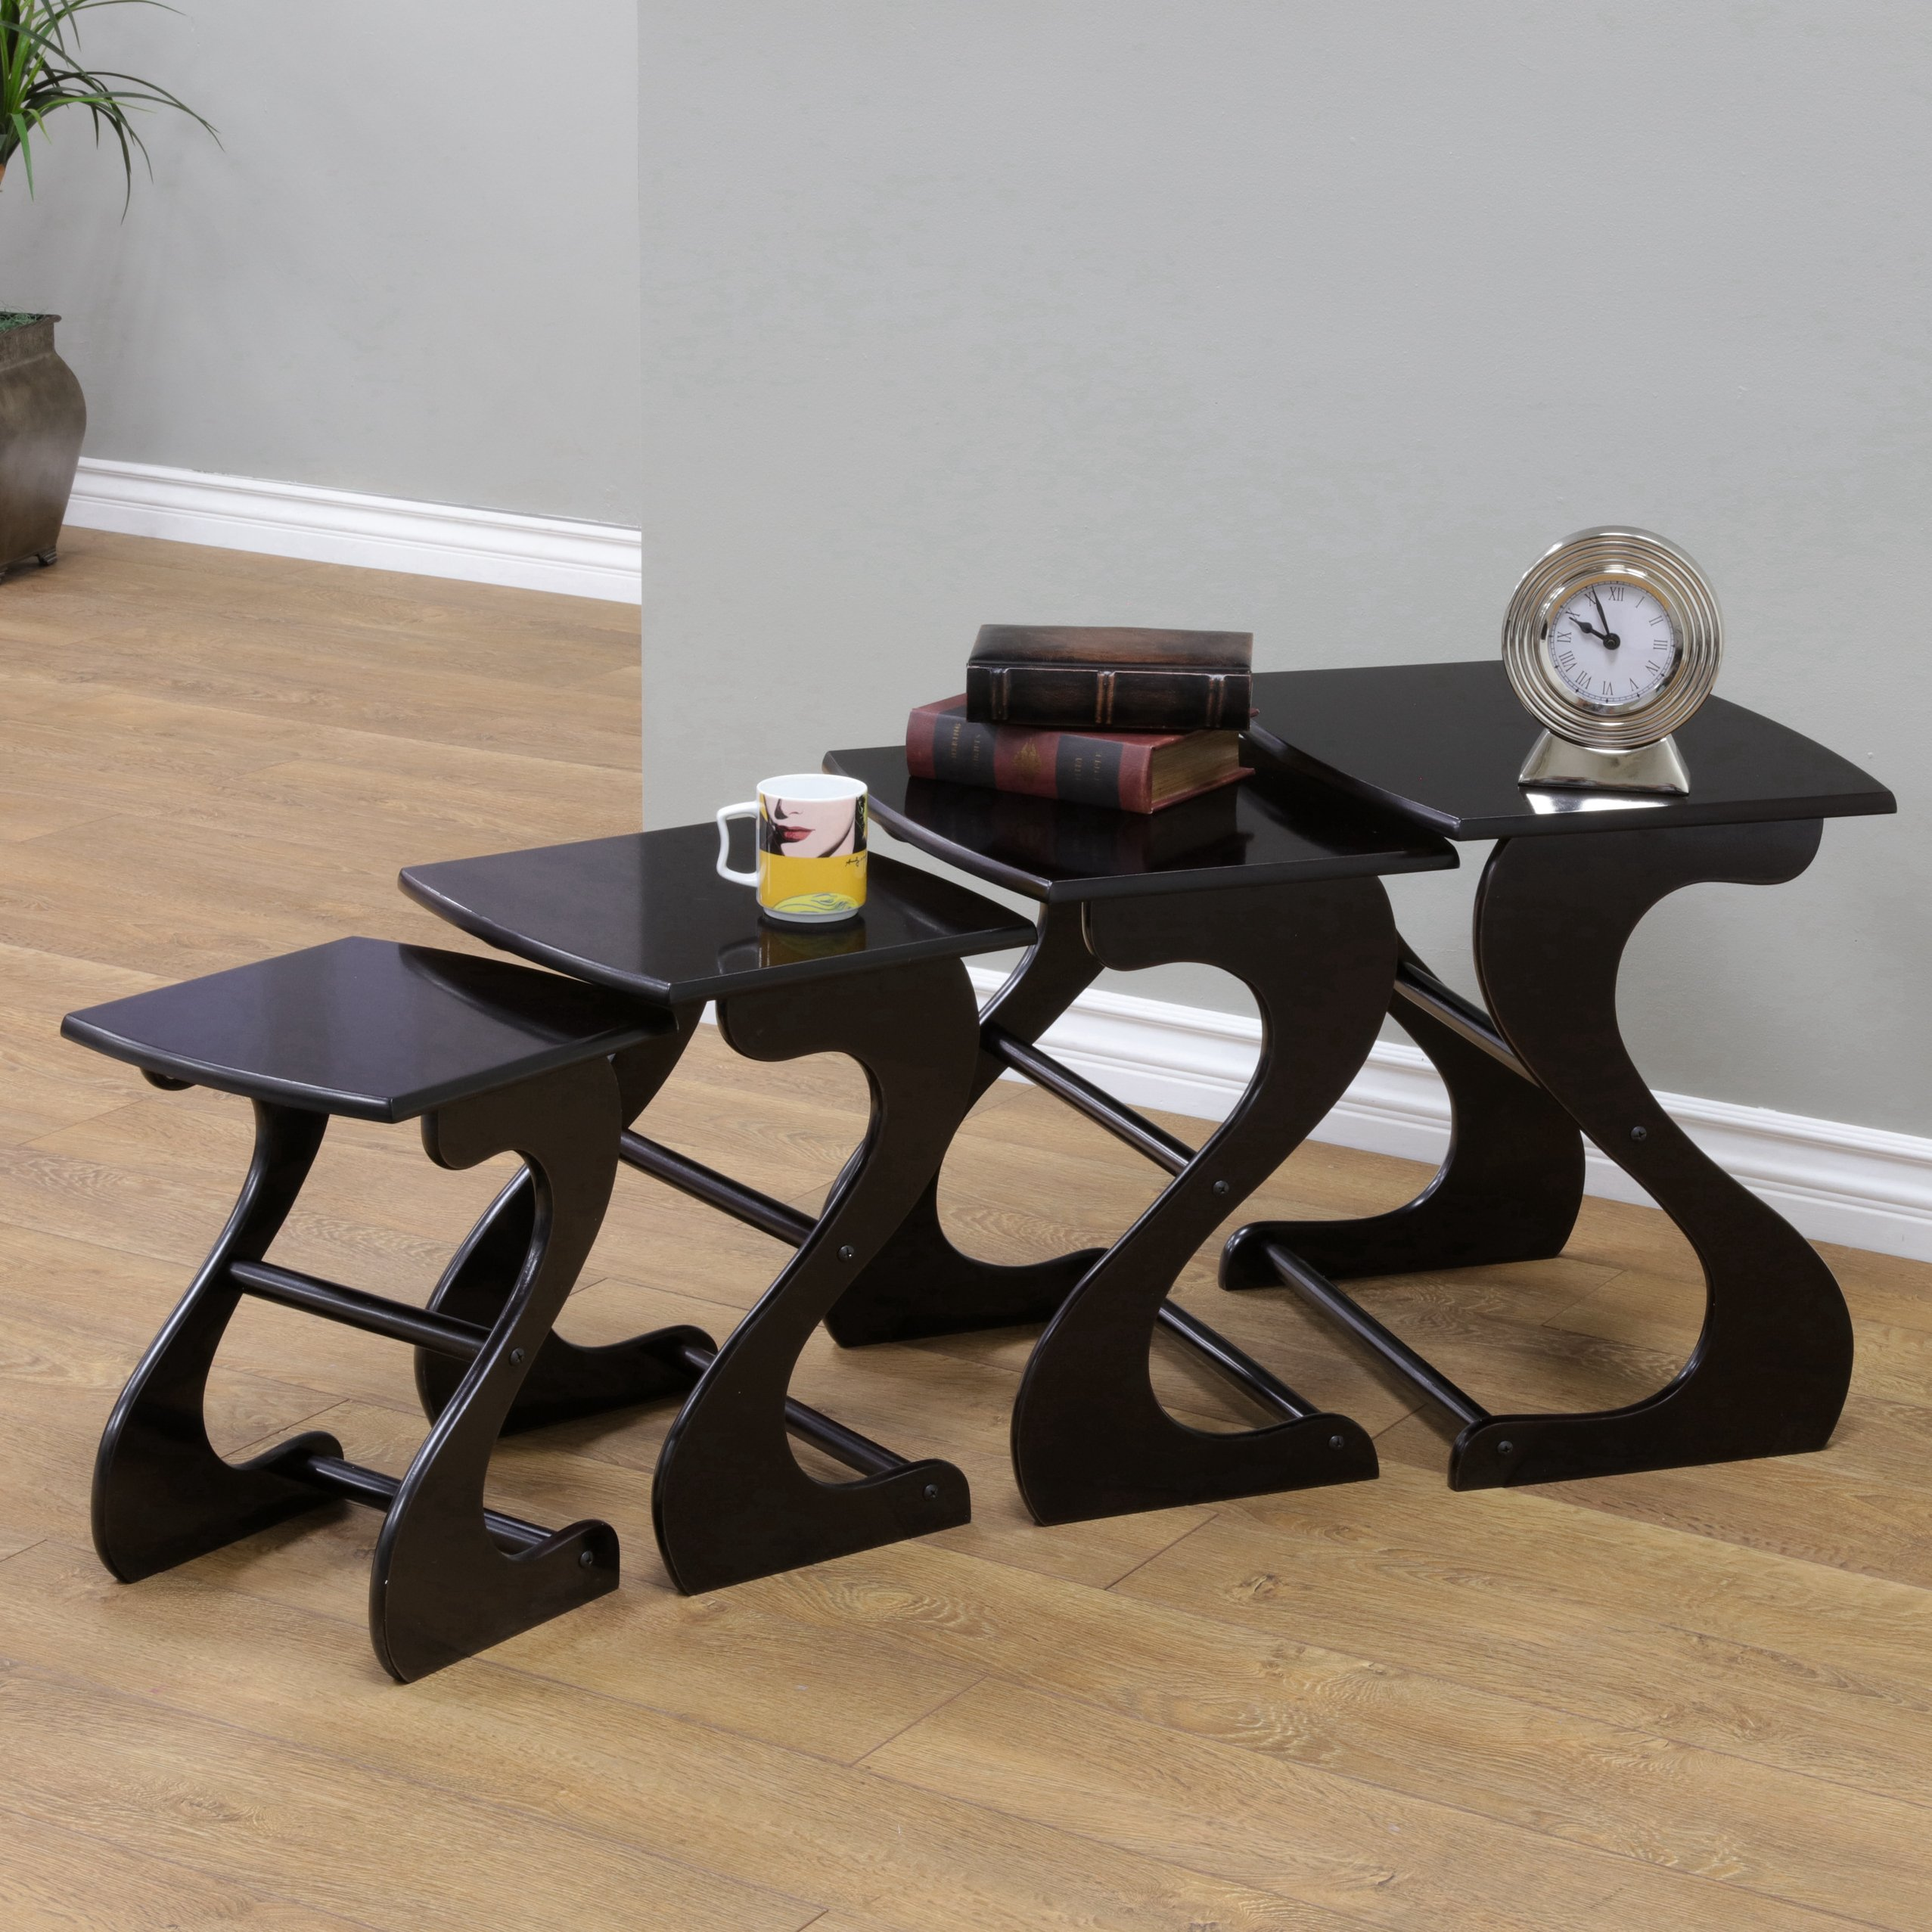 Frenchi Home Furnishing Nesting Tables (Set of 4) by Frenchi Home Furnihisng